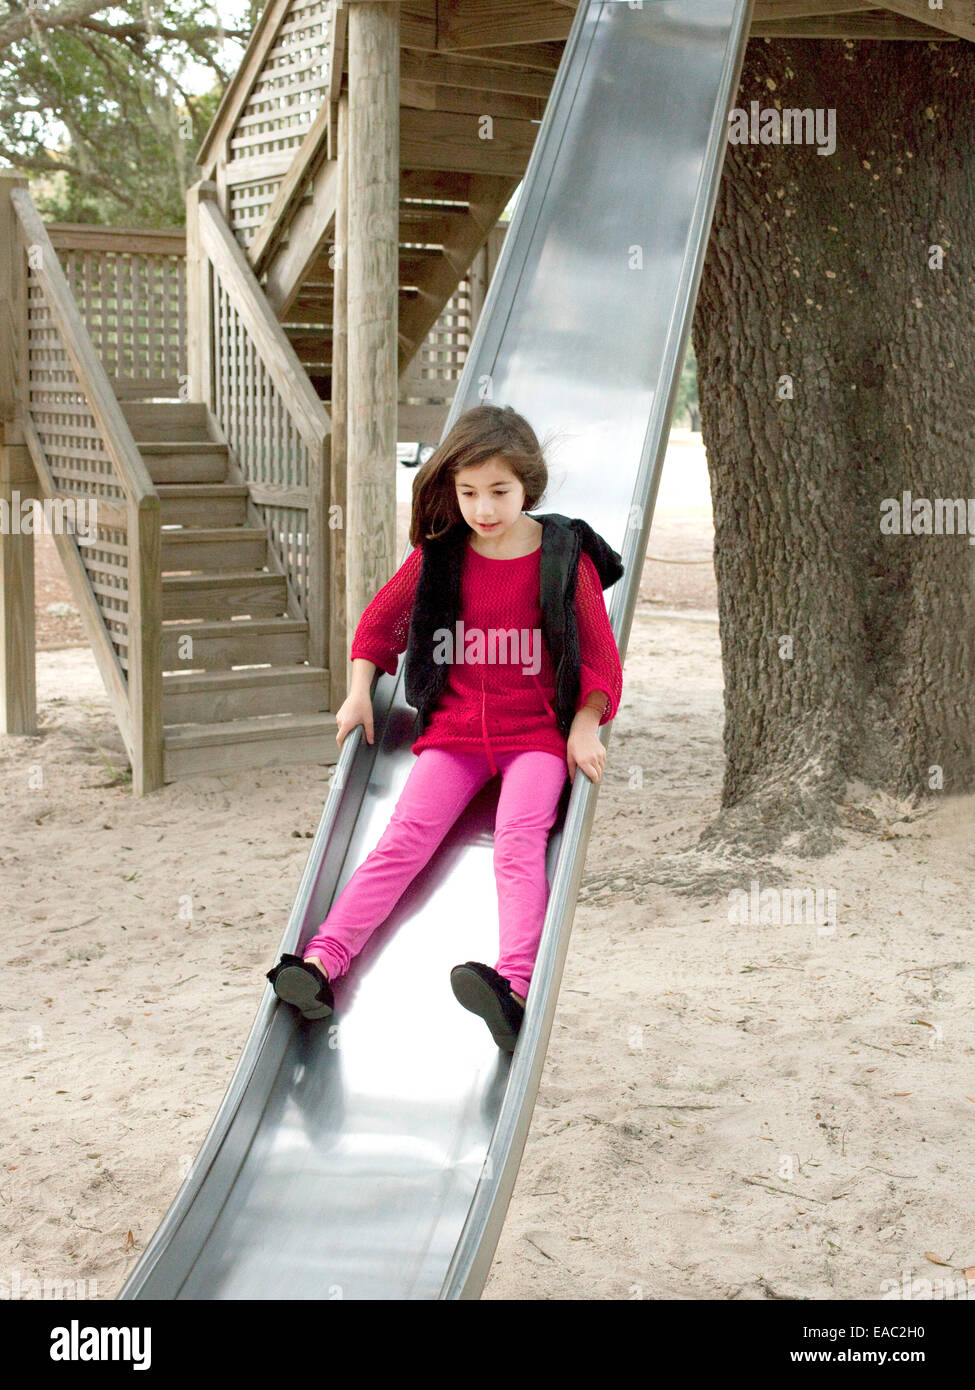 young girl on slide in playground - Stock Image